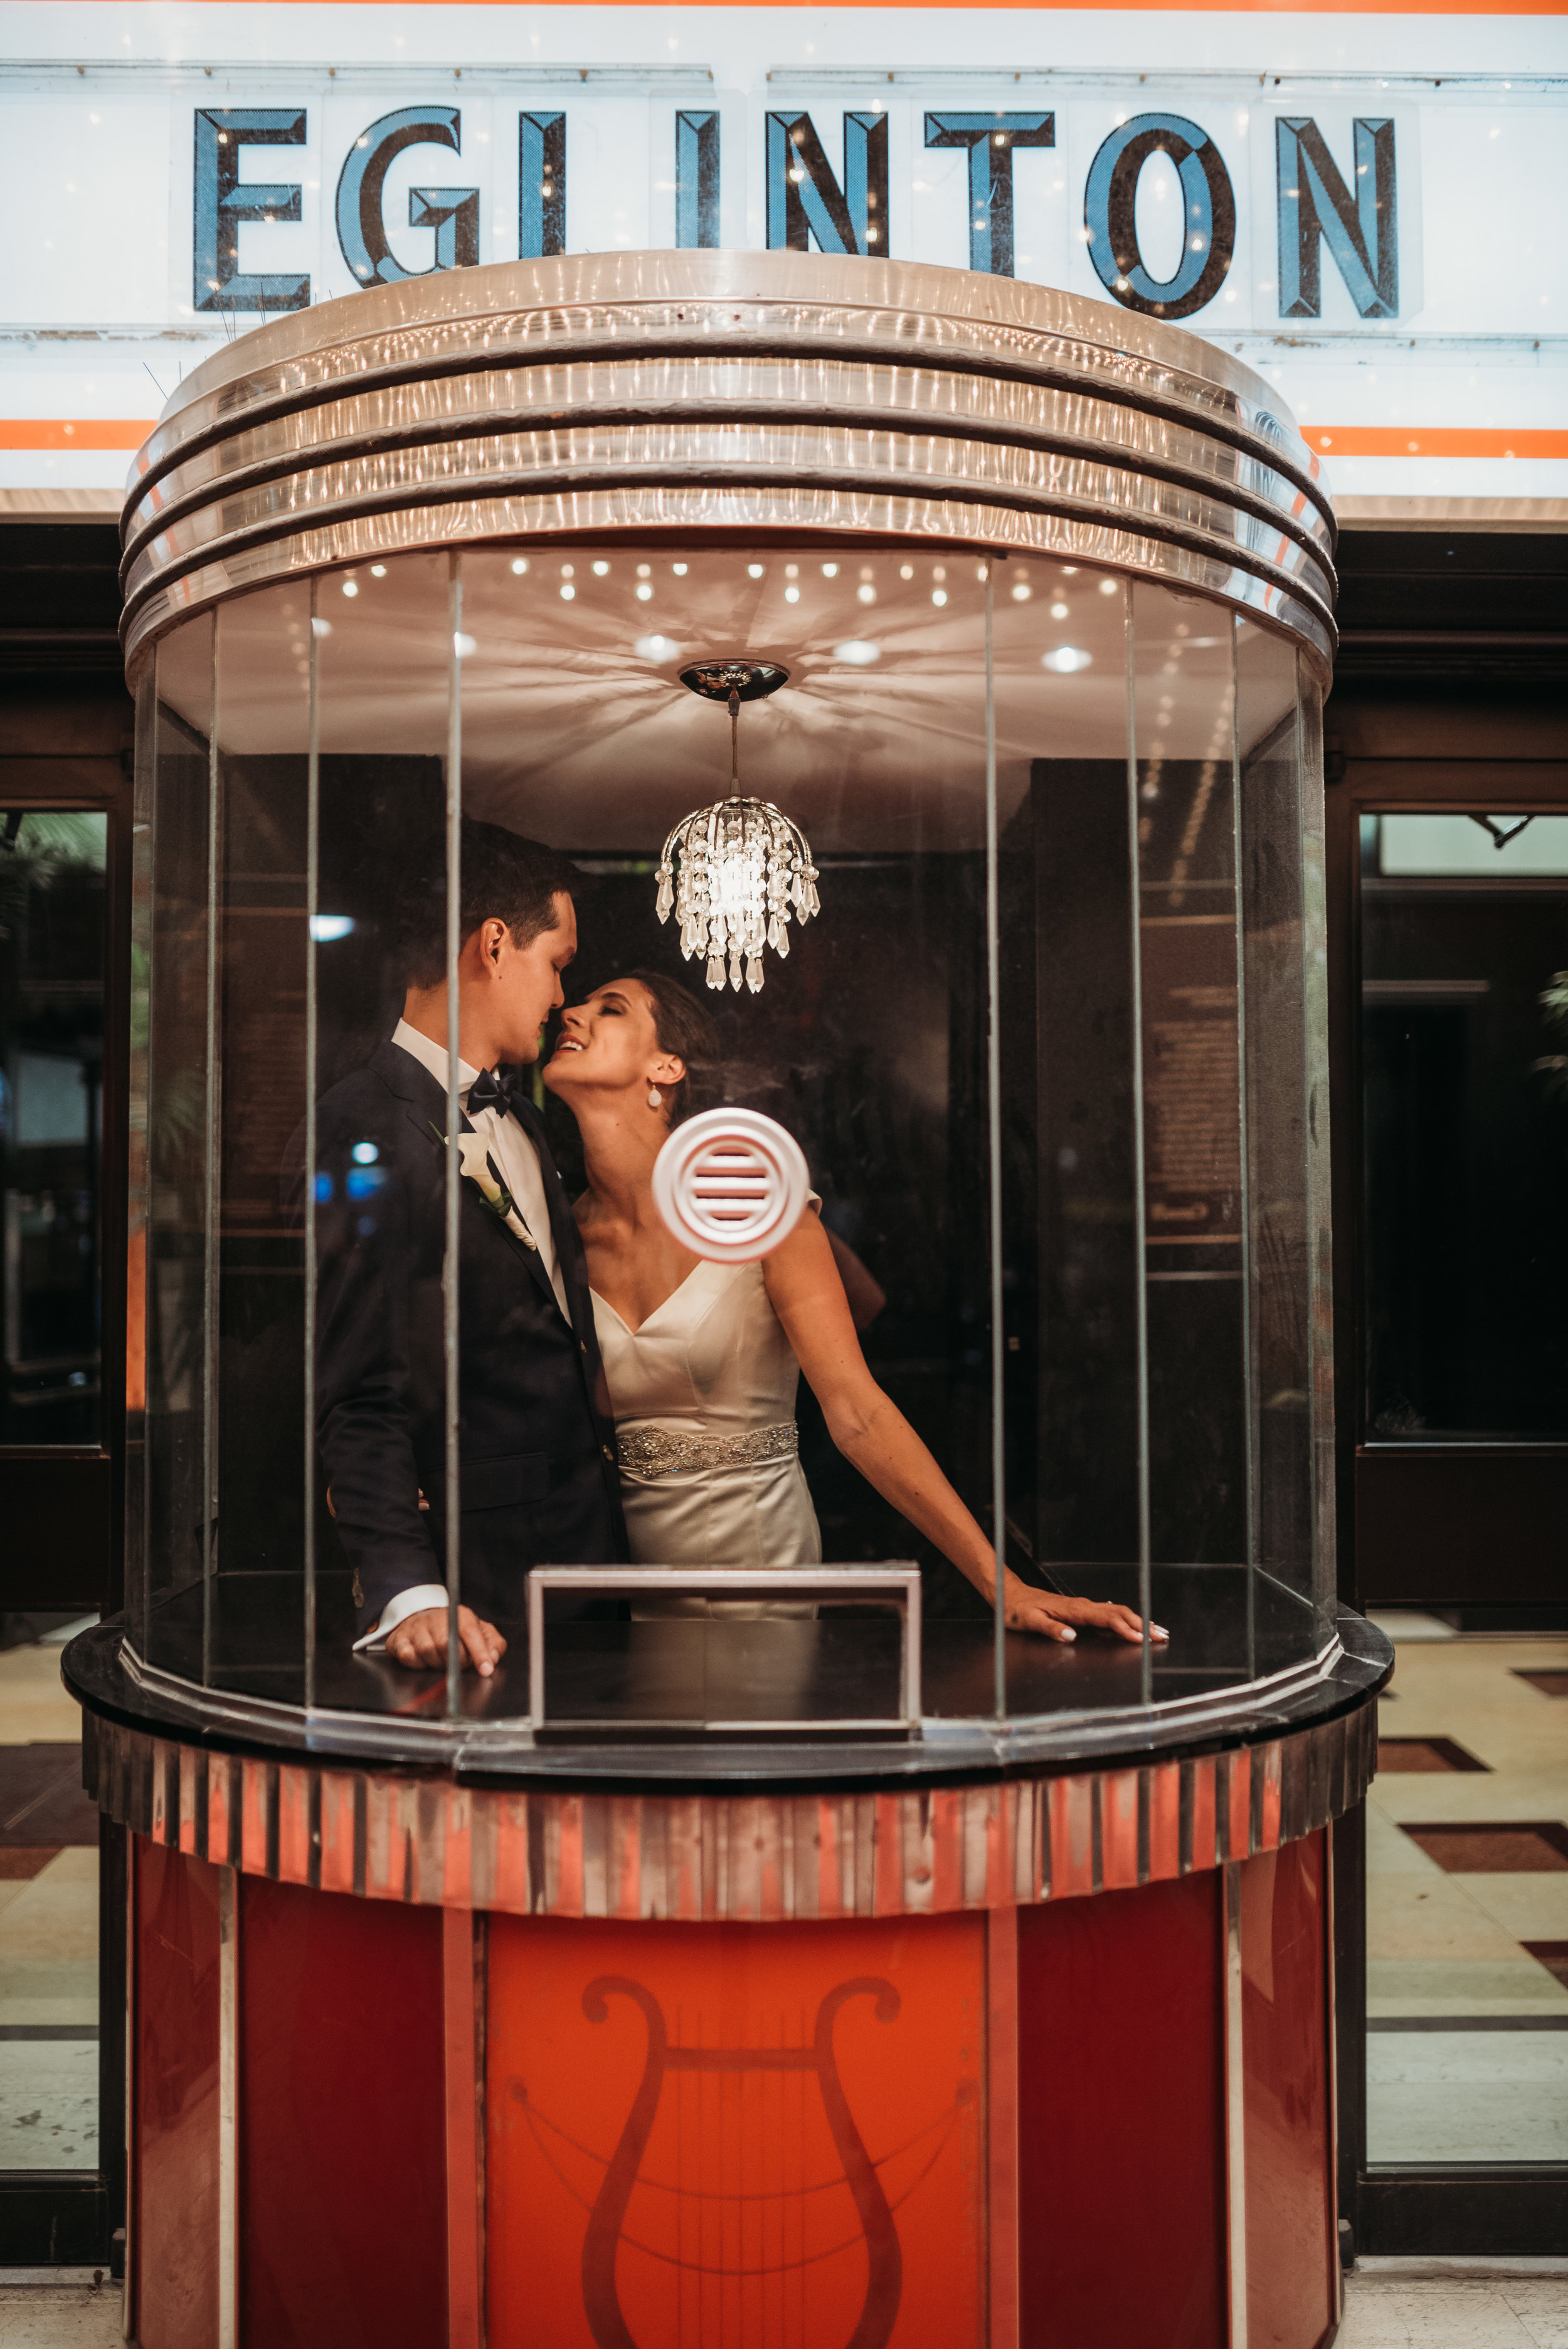 bride-groom-in-ticket-booth-eglington-grand-wedding-by-willow-birch-photo-toronto-documentary-wedding-photographers.jpg